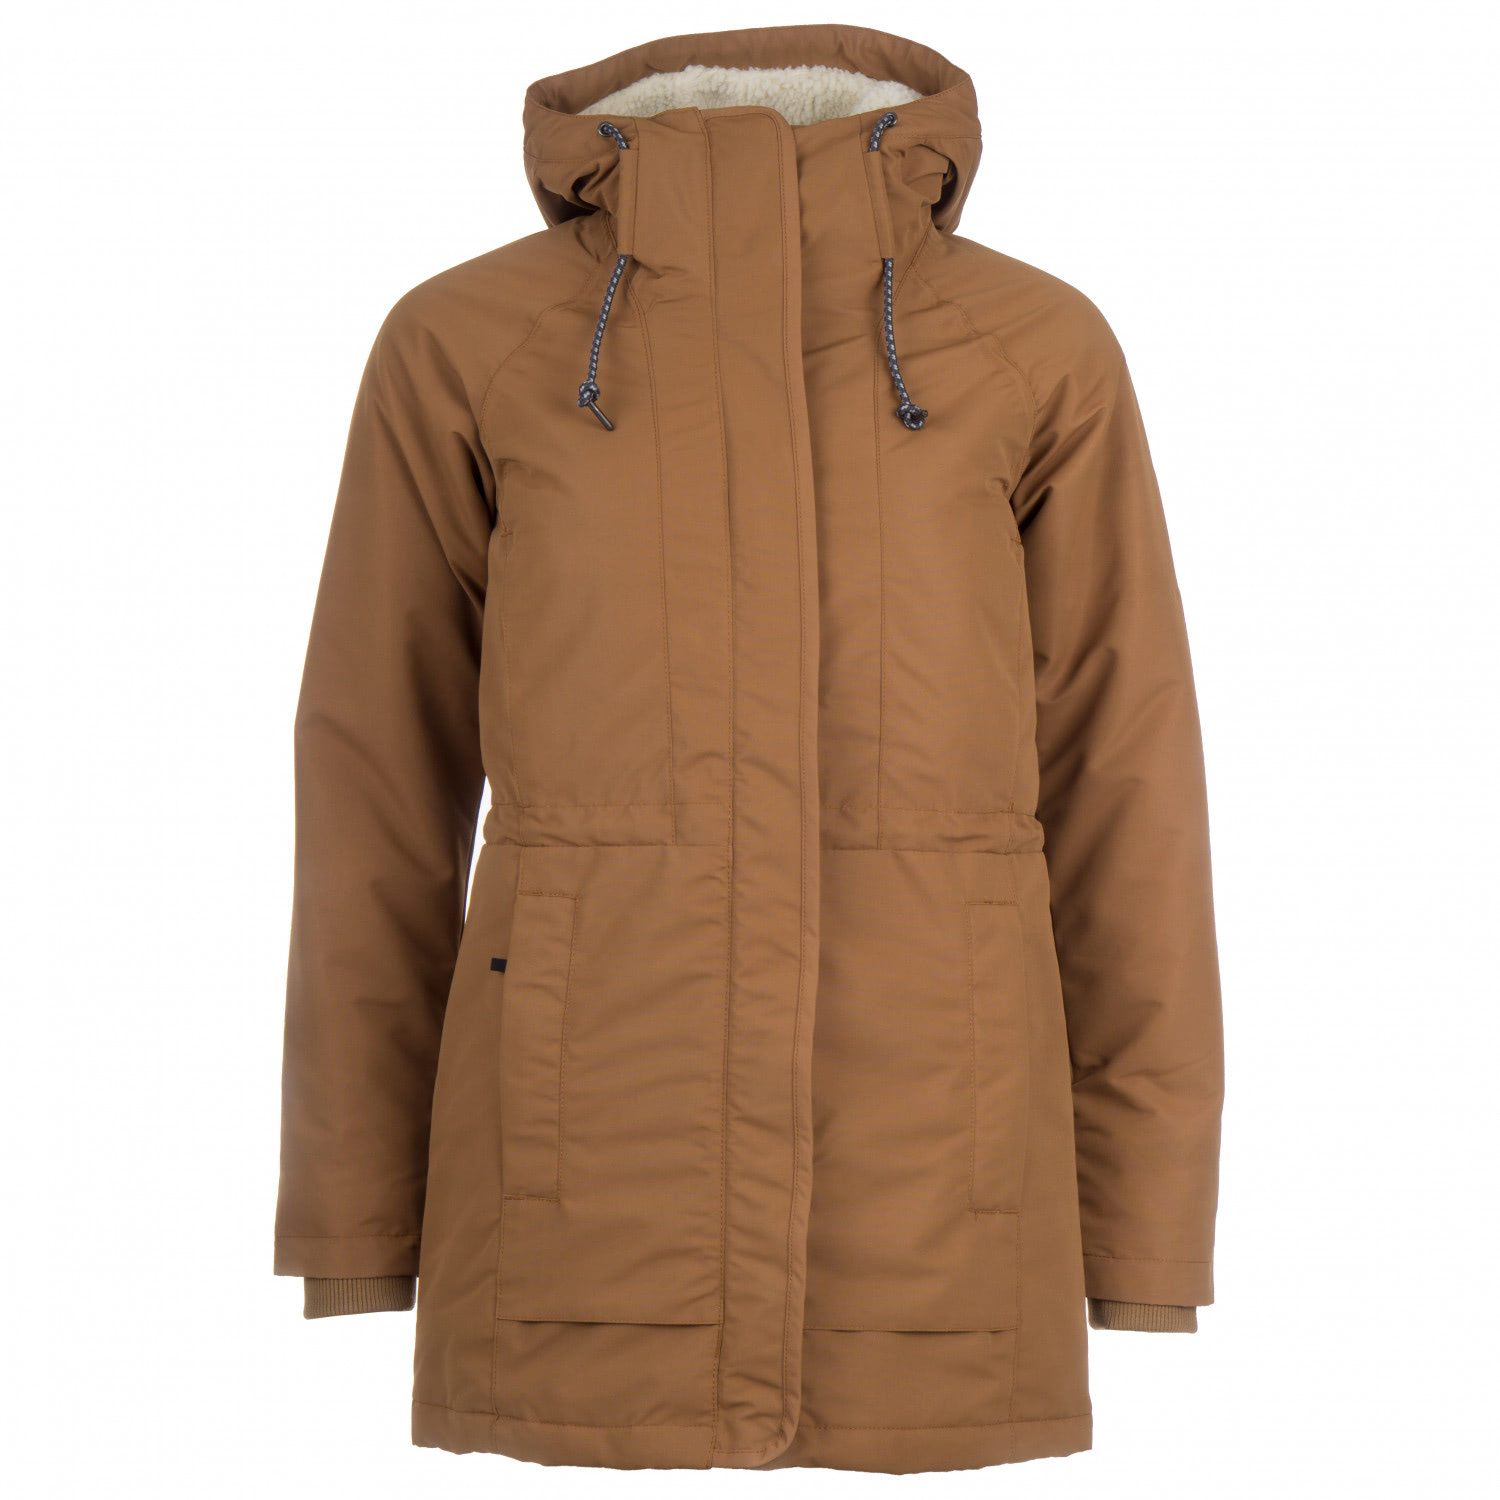 sherpa Lined Jacket | Meaningful Experiences and Eco-Friendly Gift